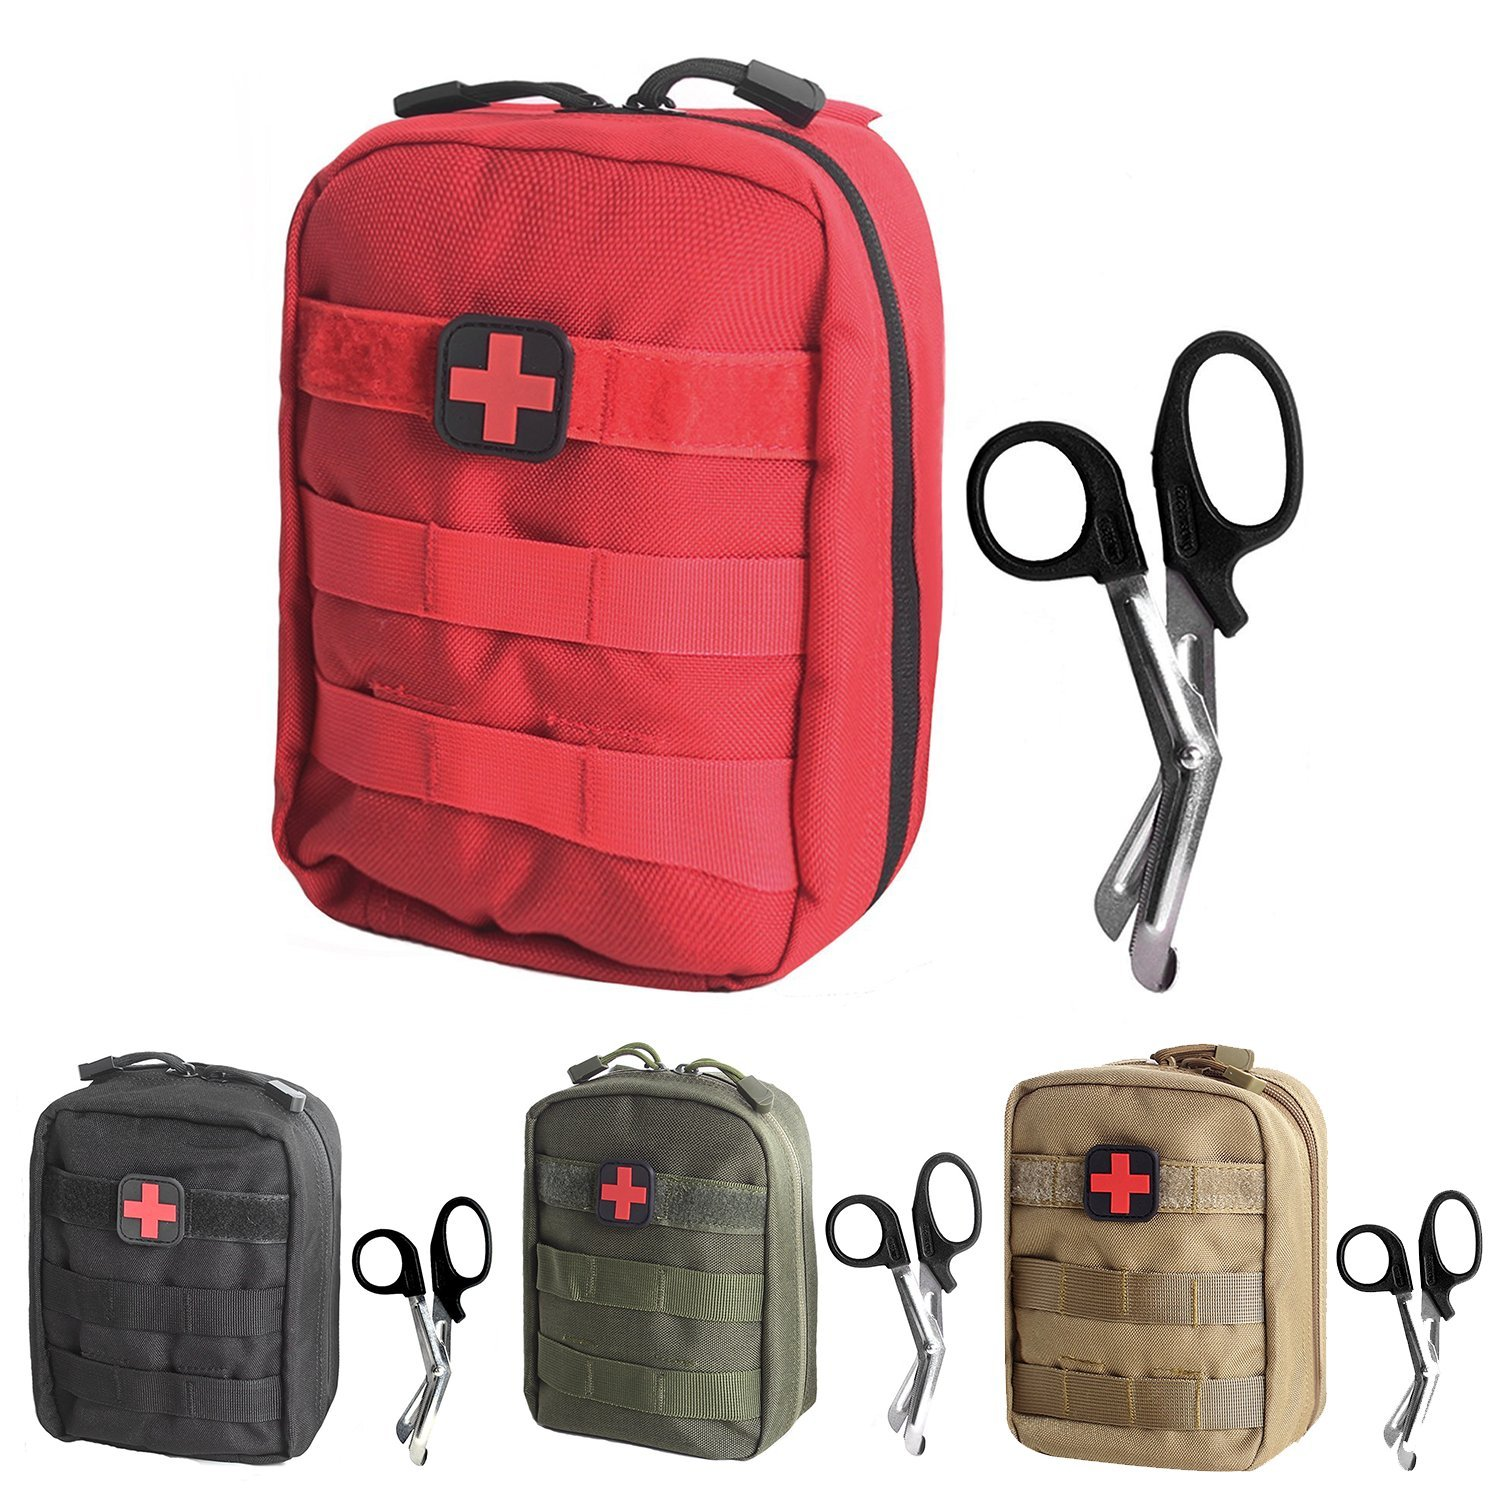 Tactical MOLLE EMT Medical First Aid IFAK Utility Pouch Bag (RED with First Aid Patch)